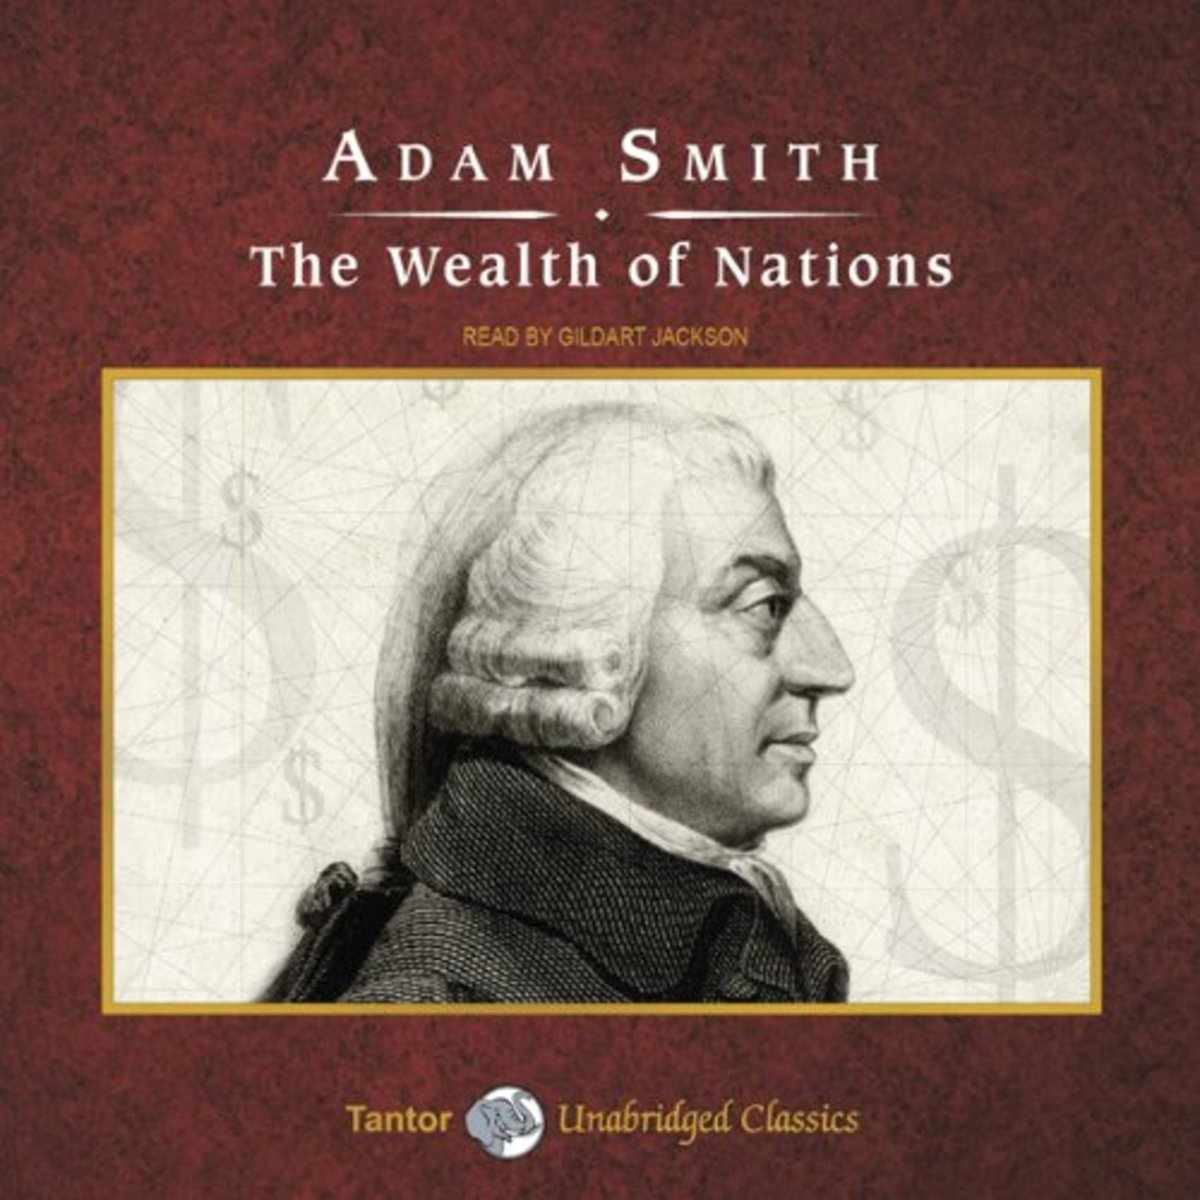 Adam Smith's The Wealth of Nations has been misquoted more than the Bible in a disingenuous effort to promote the principles of capitalism.